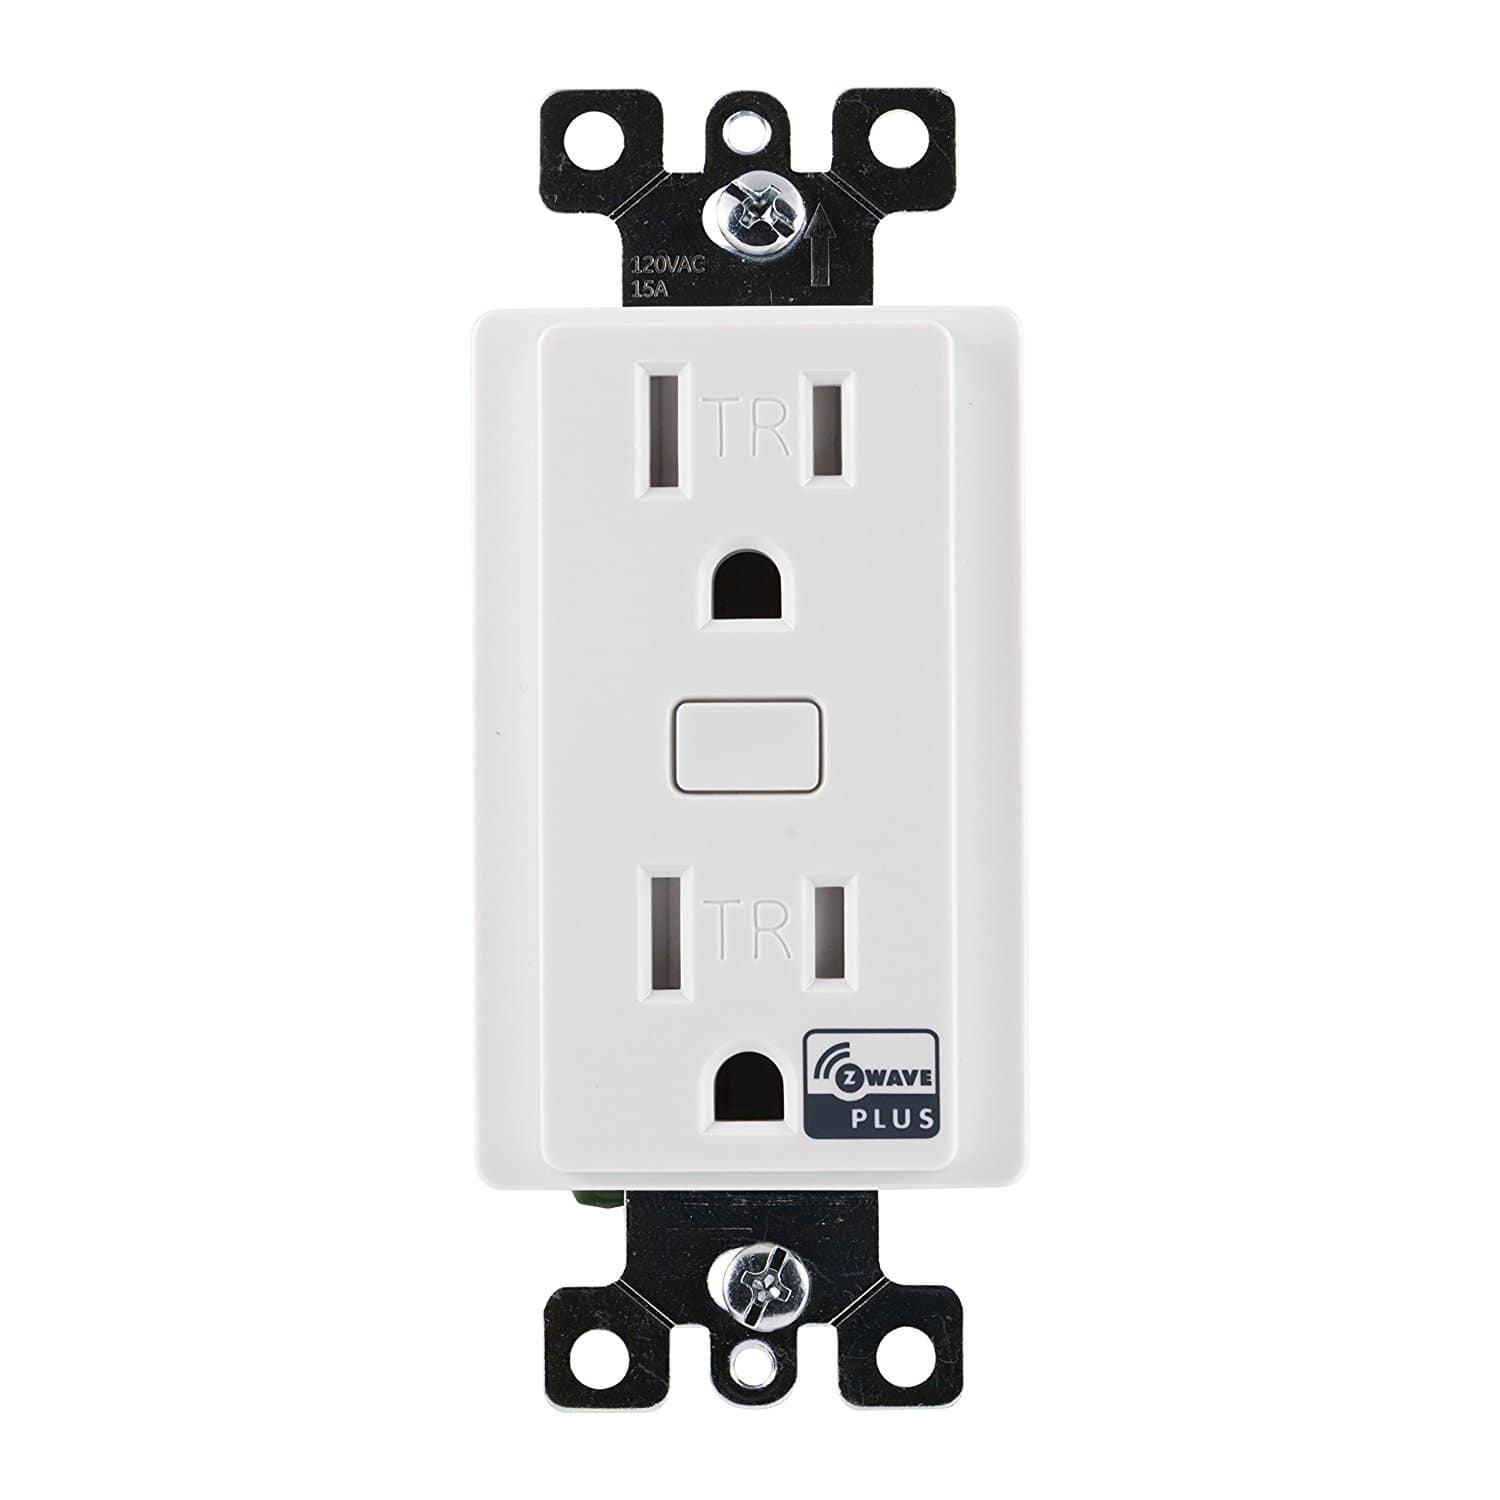 Amazon GE Z-Wave Plus Wireless Smart Lighting Control Duplex Receptacle Outlet, On/Off, In-Wall, White, Tamper Resistant, 14288 $29.99